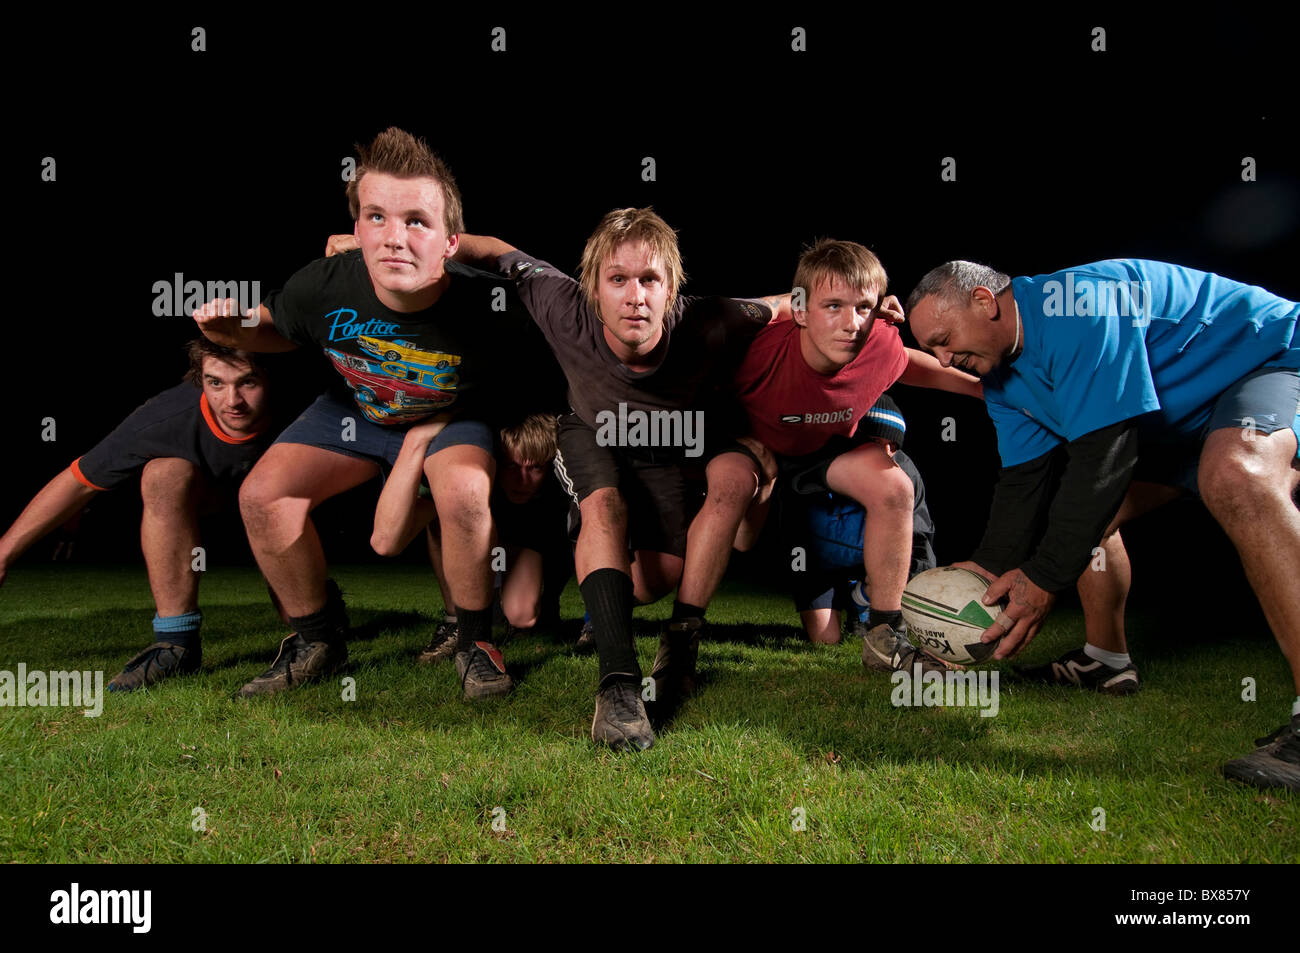 under 19's doing rugby pratice - Stock Image